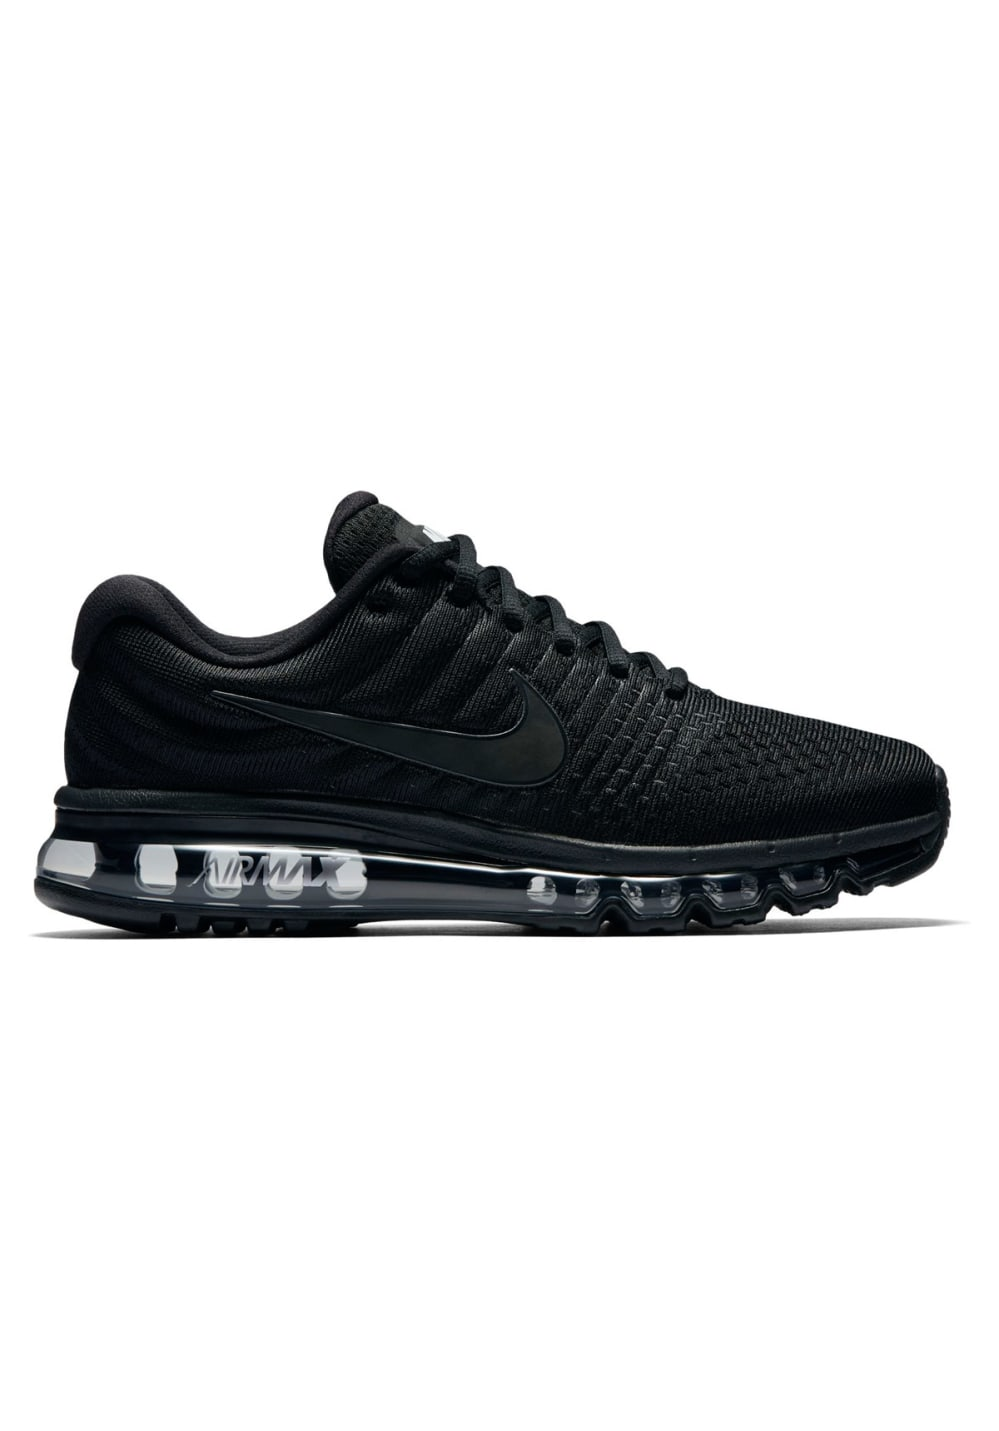 nouvelle arrivee 20886 8a9a1 Nike Air Max 2017 - Running shoes for Men - Black